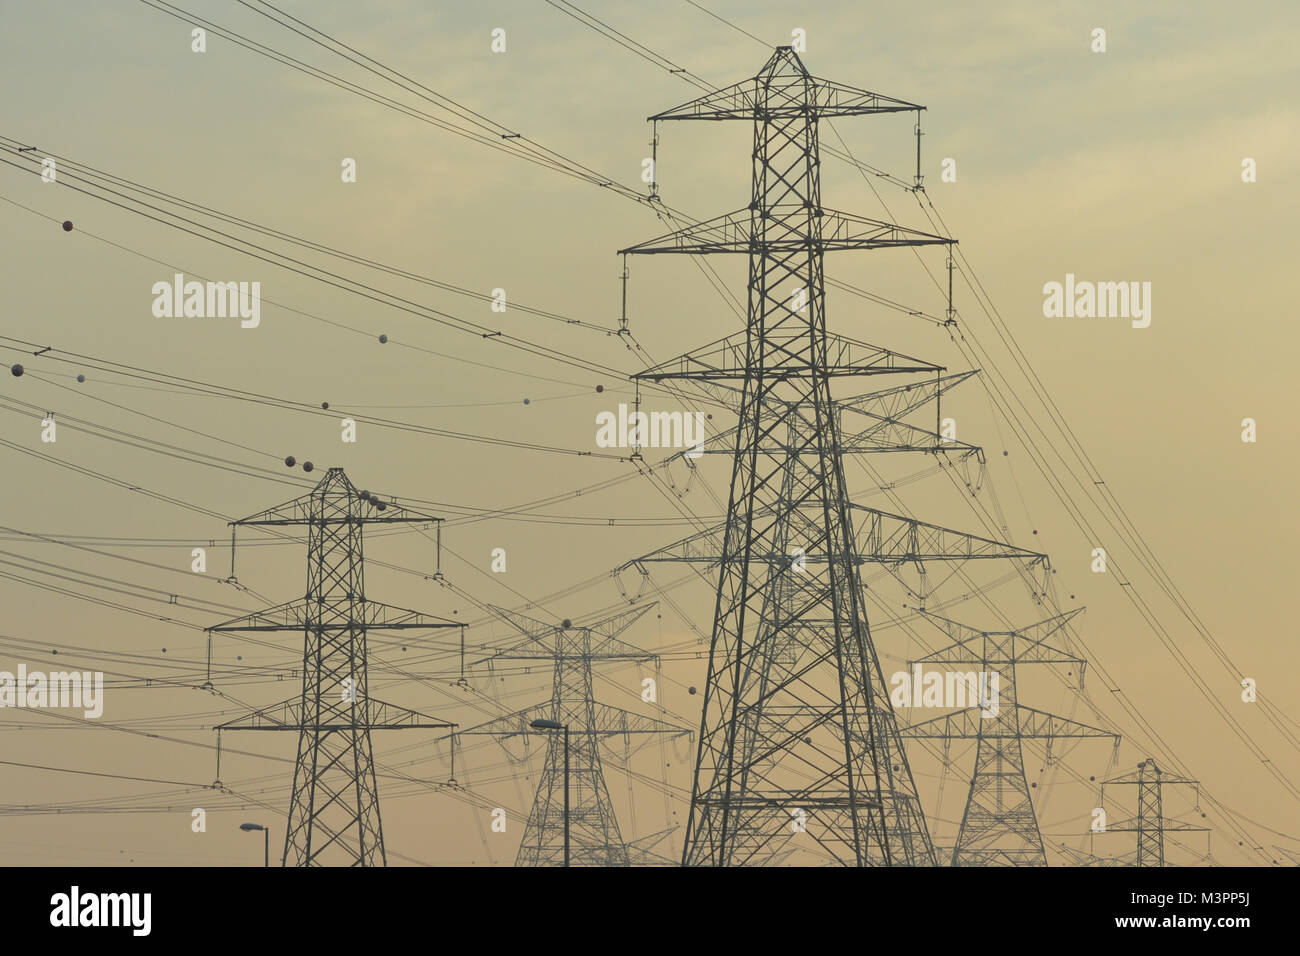 A view of the electric wires network alongside of a motorway near Dubai.  Credit: ASWphoto/Alamy Live News